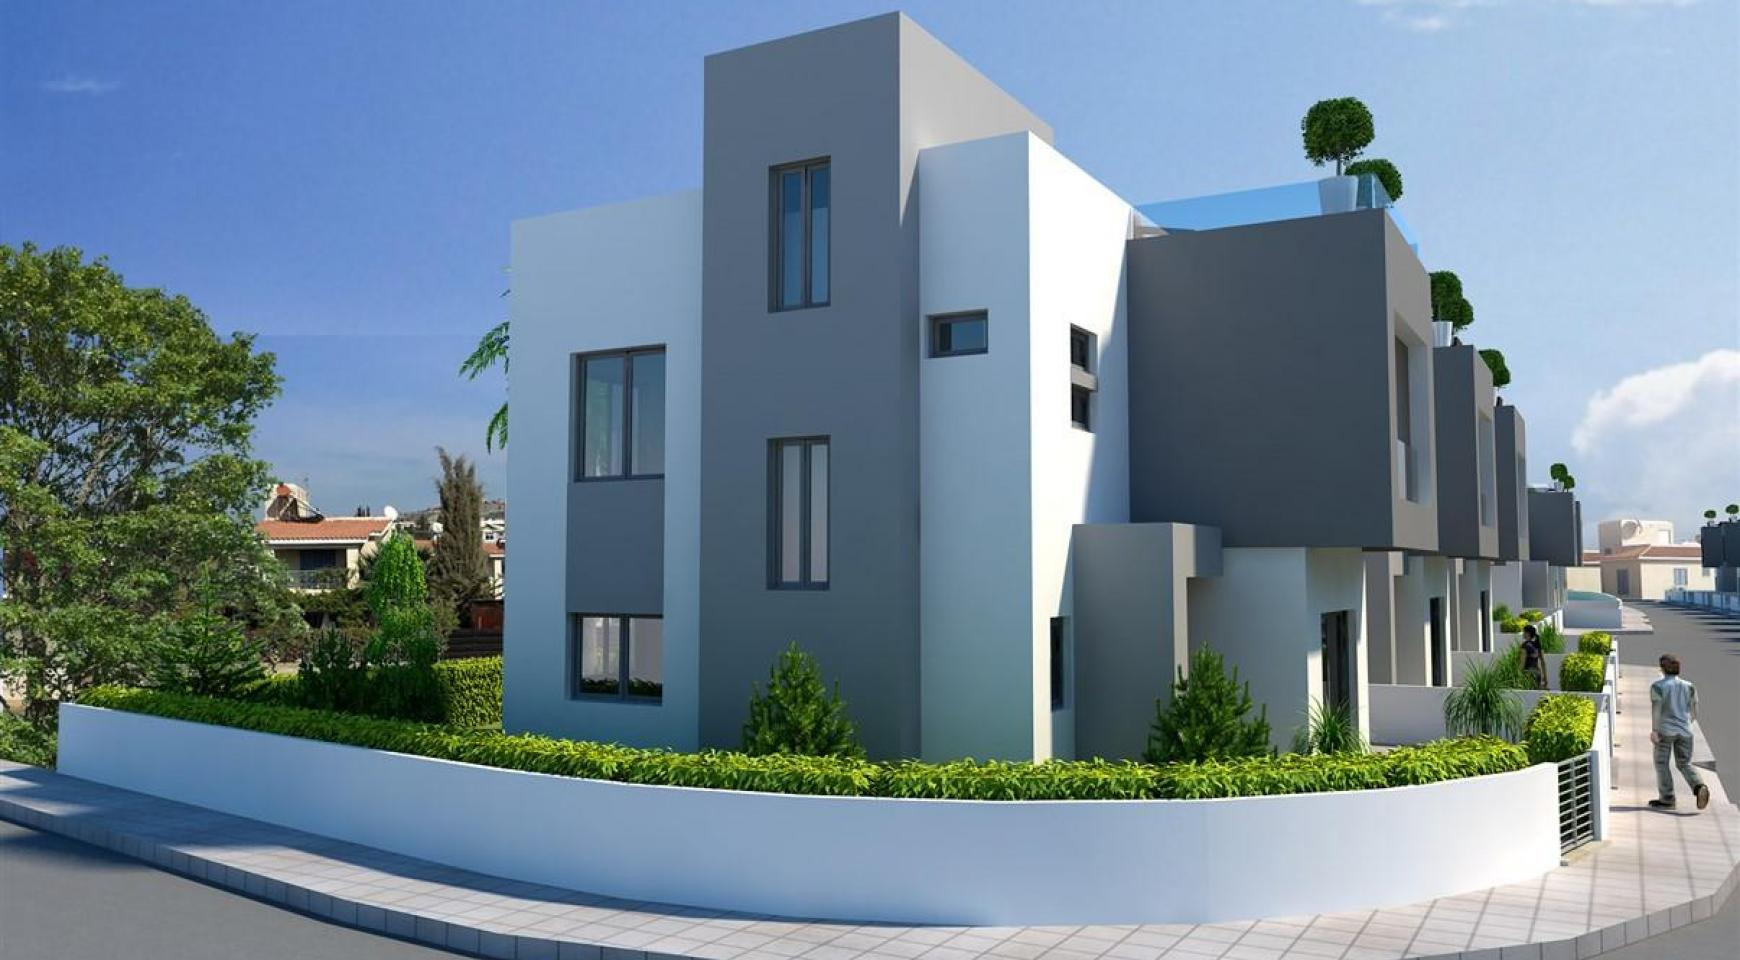 3 Bedroom Villa in a New Project - 37